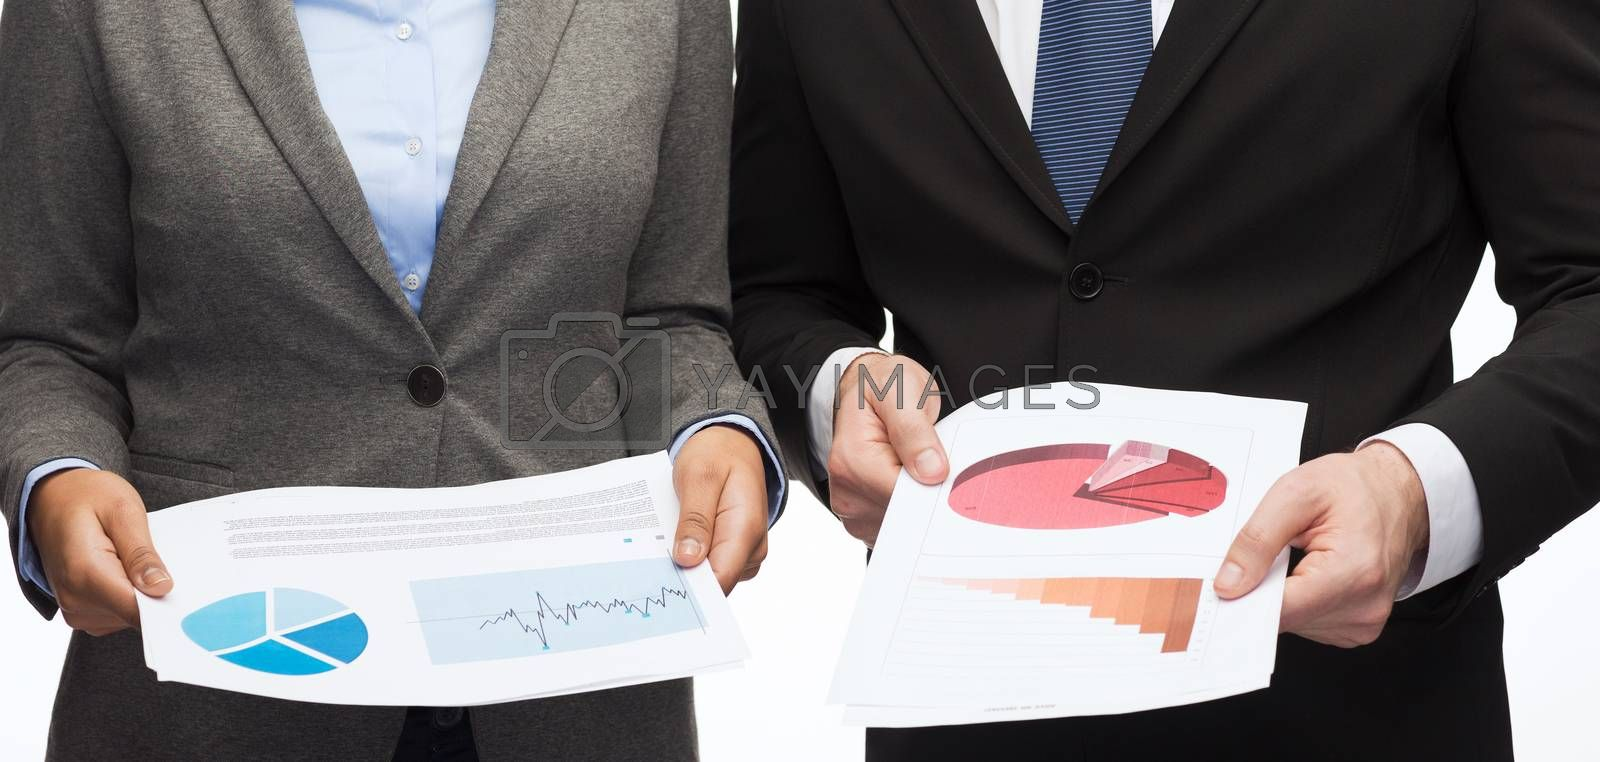 business and economy concept - smiling businesswoman and businessman with graphs and charts